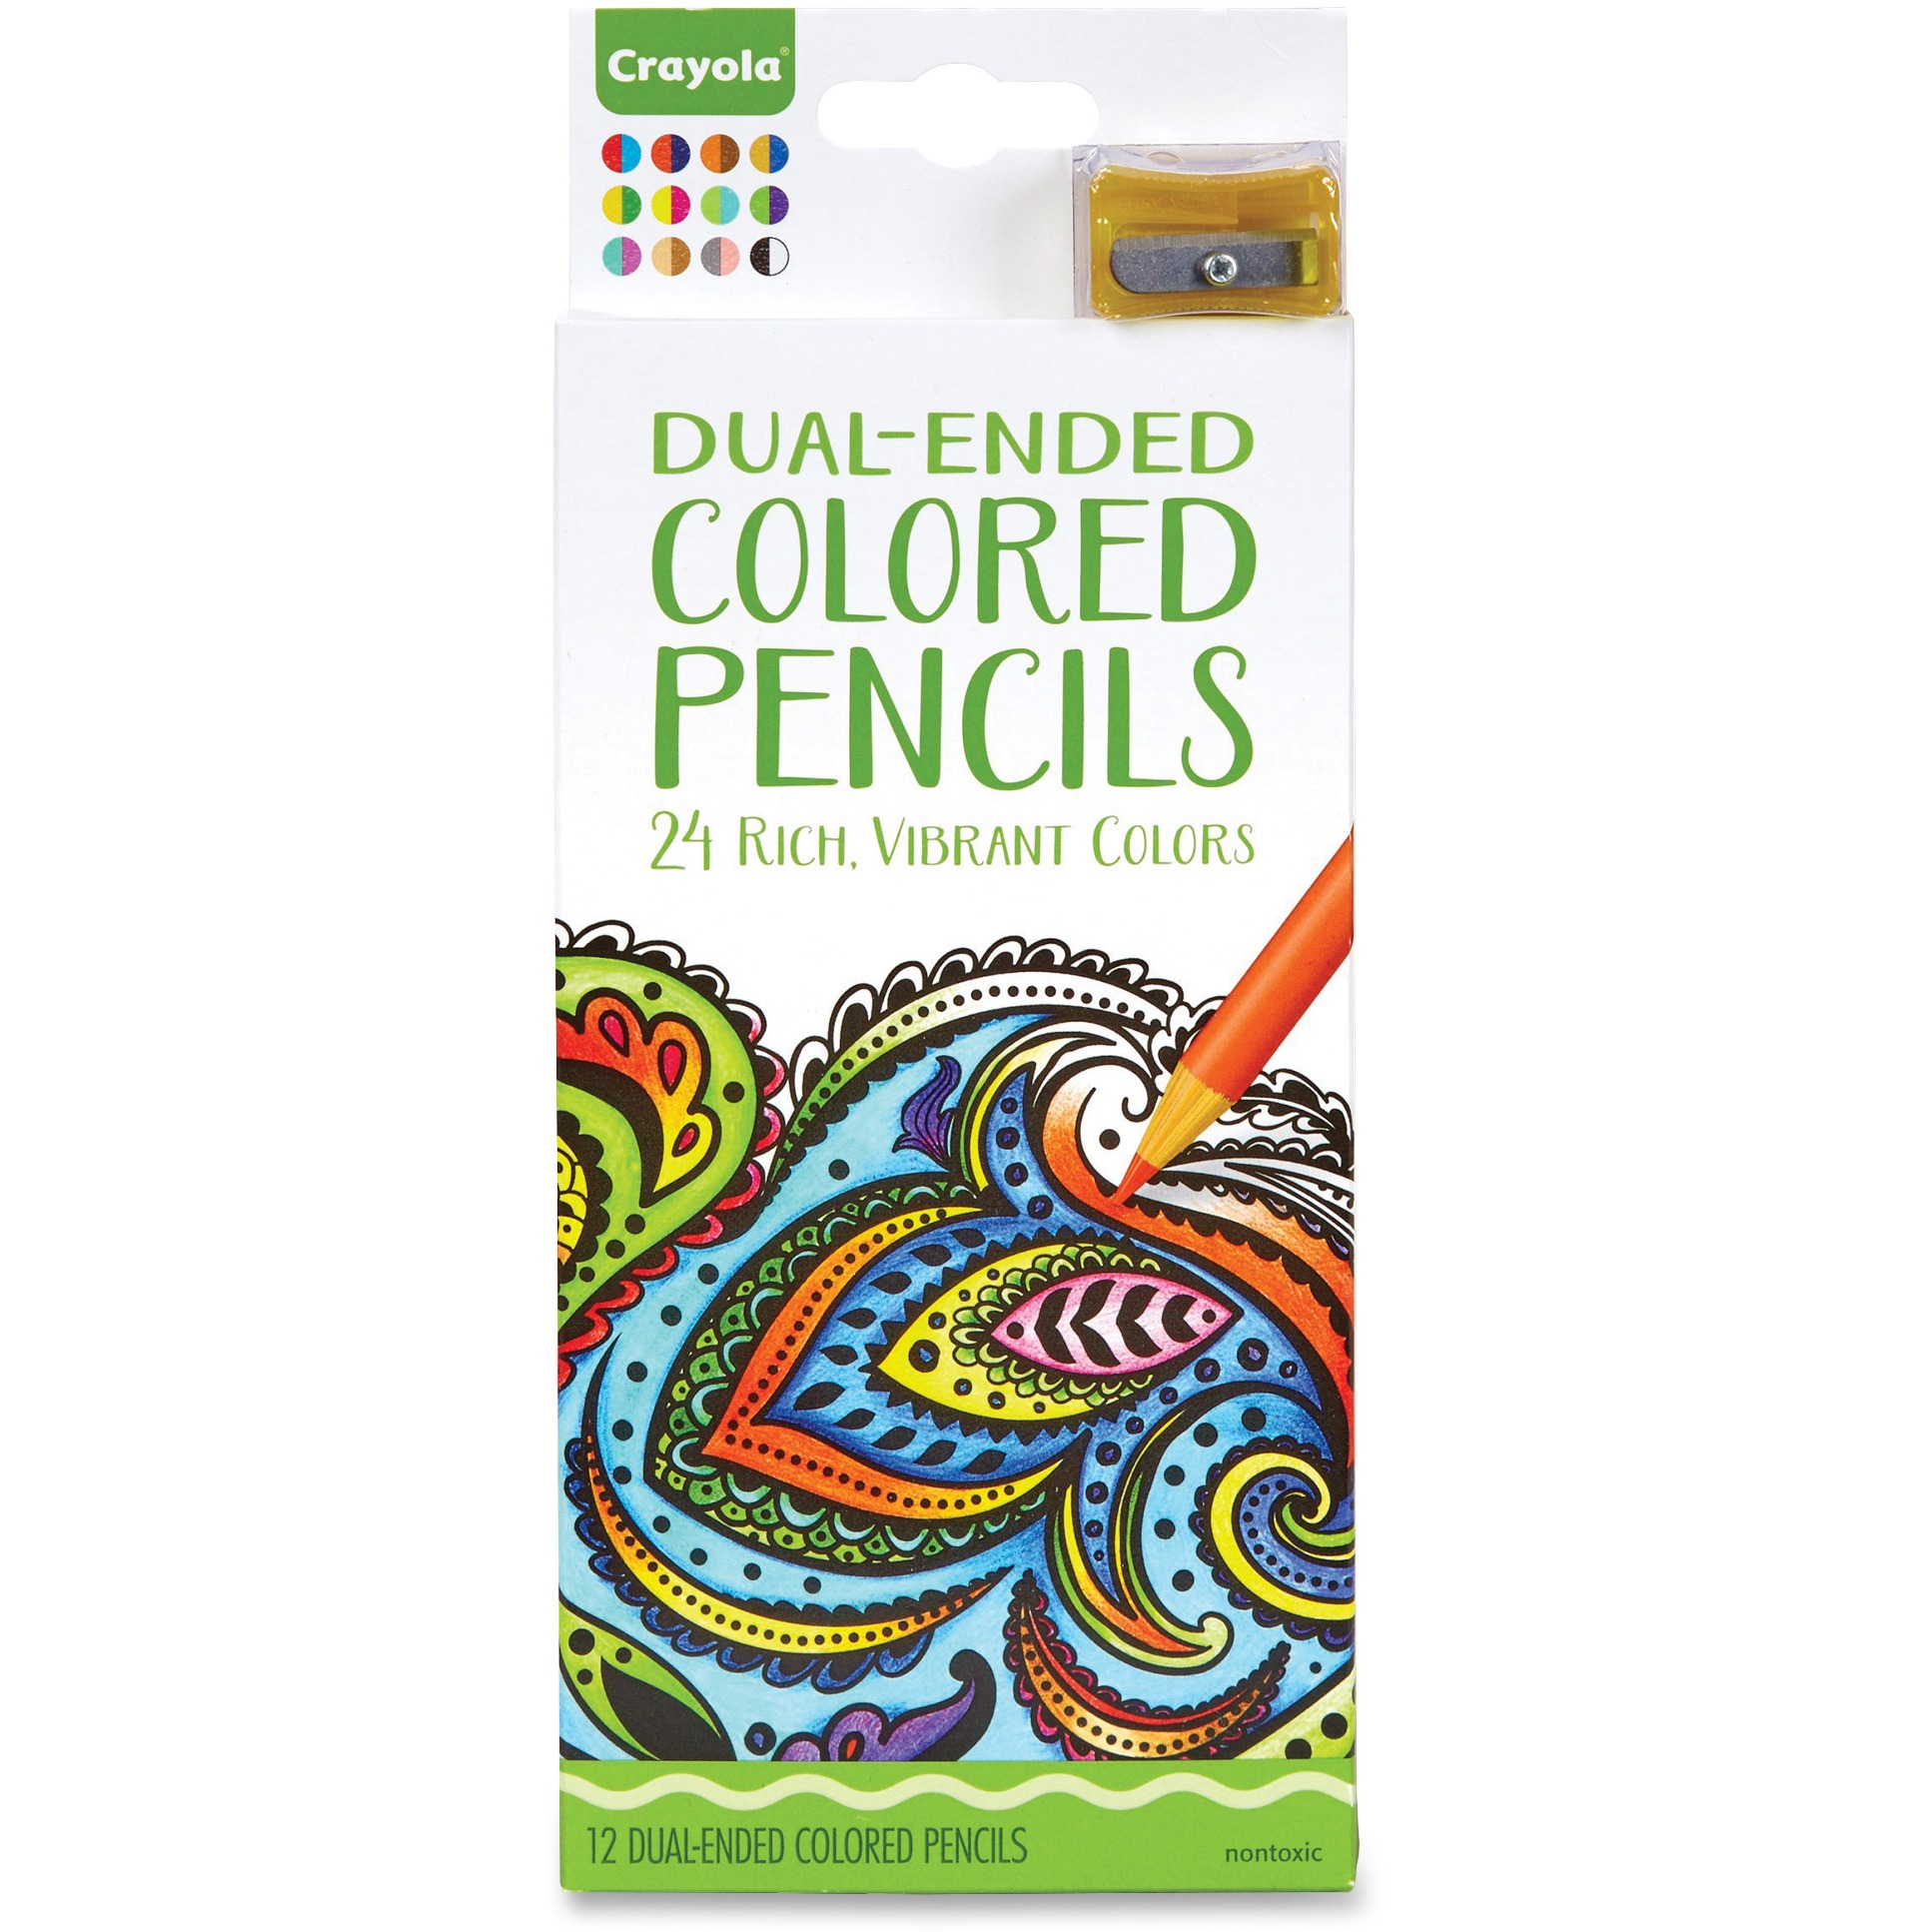 Crayola 12ct Adult Coloring Dual-Ended Colored Pencils by Crayola, LLC